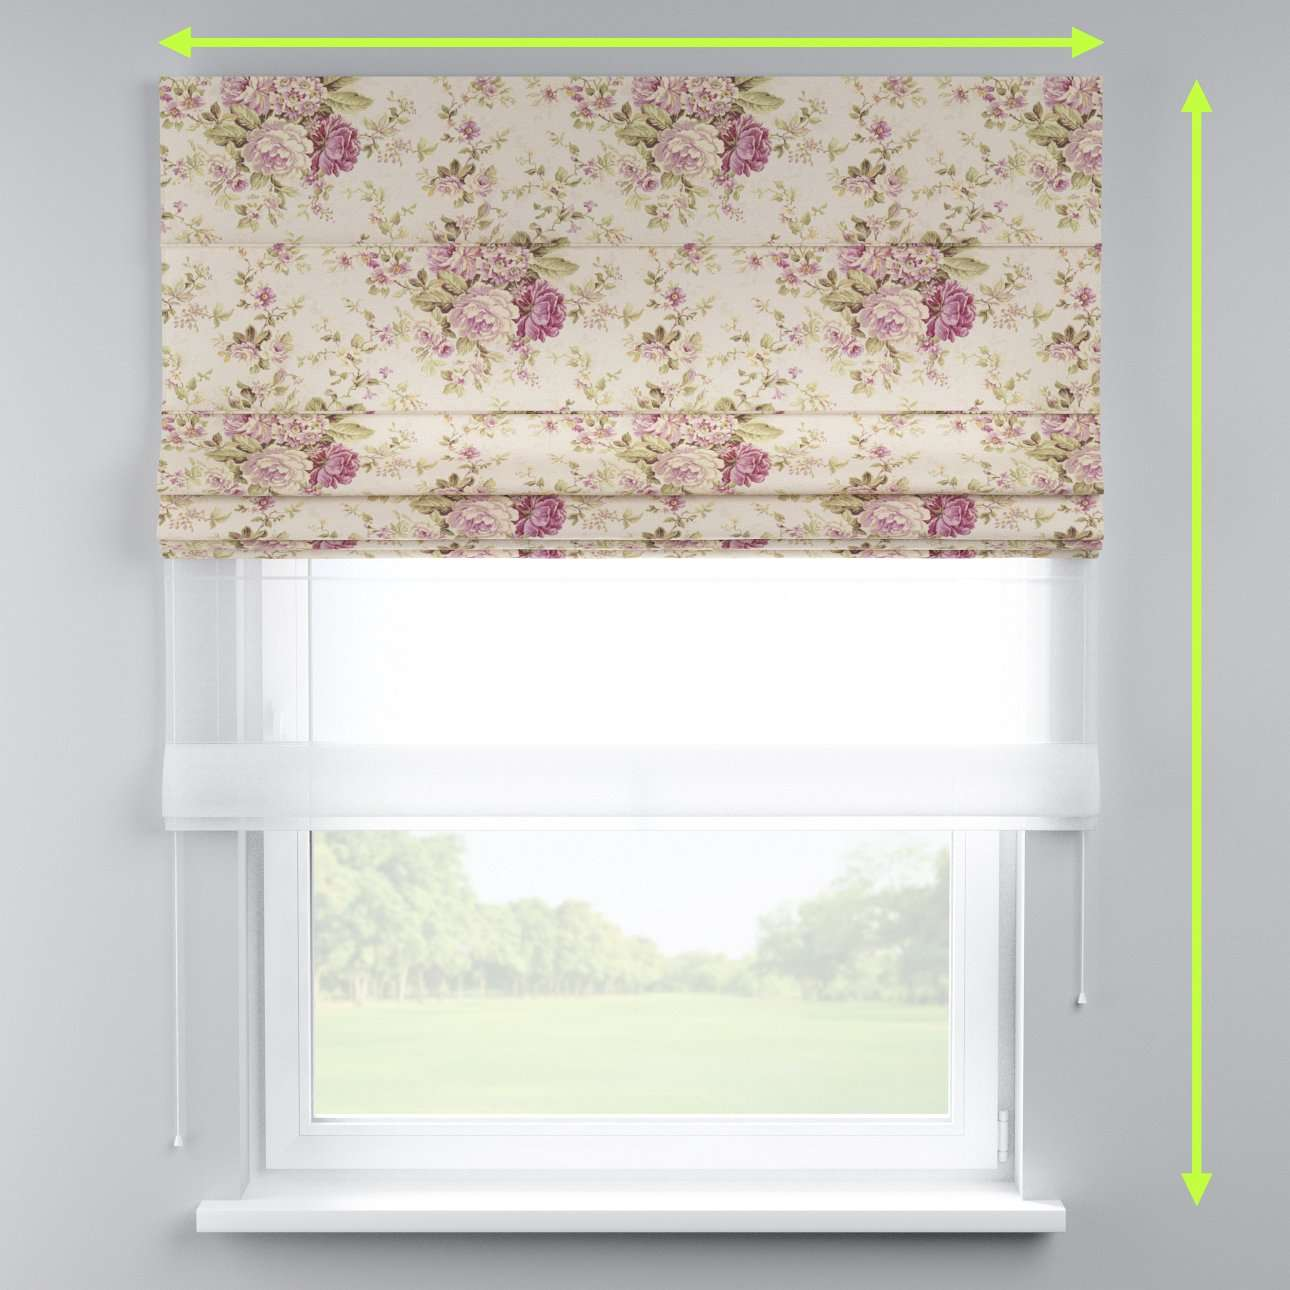 Voile and fabric roman blind (DUO II) in collection Londres, fabric: 122-08